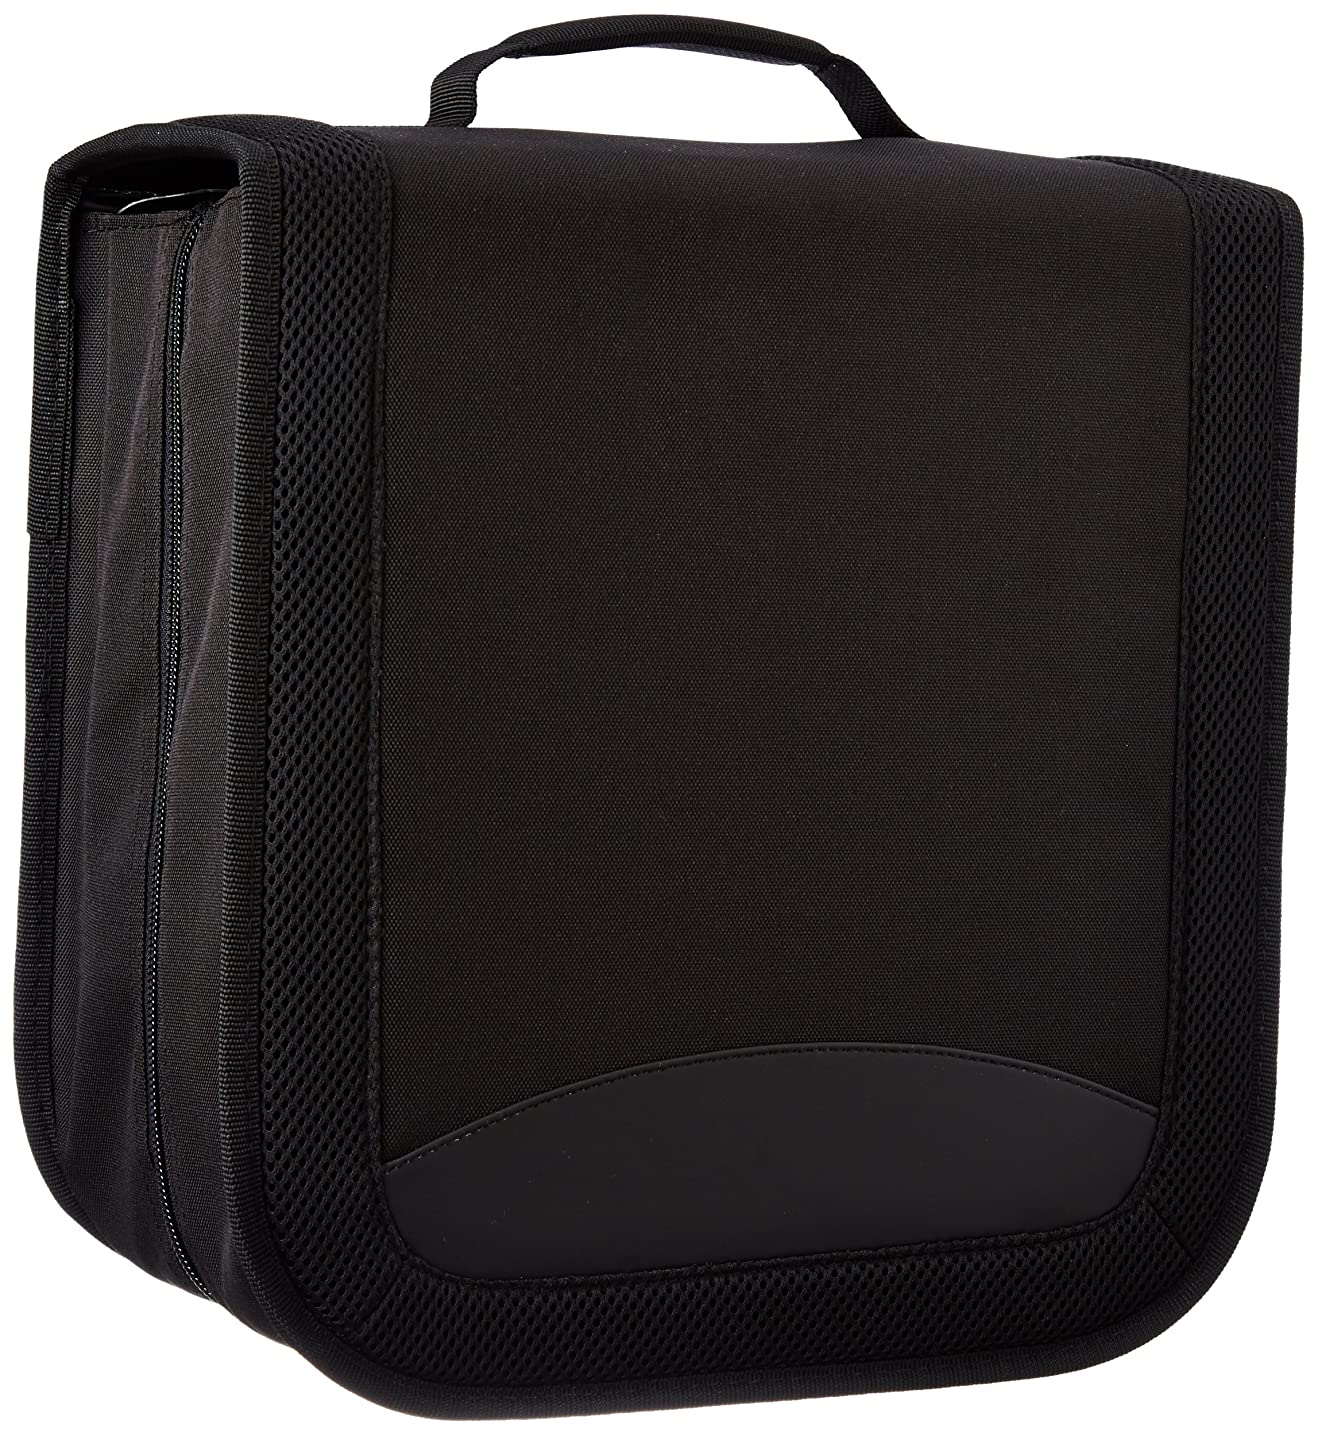 AmazonBasics Nylon CD/DVD Binder Case (400 Disc Holder Storage Capacity)